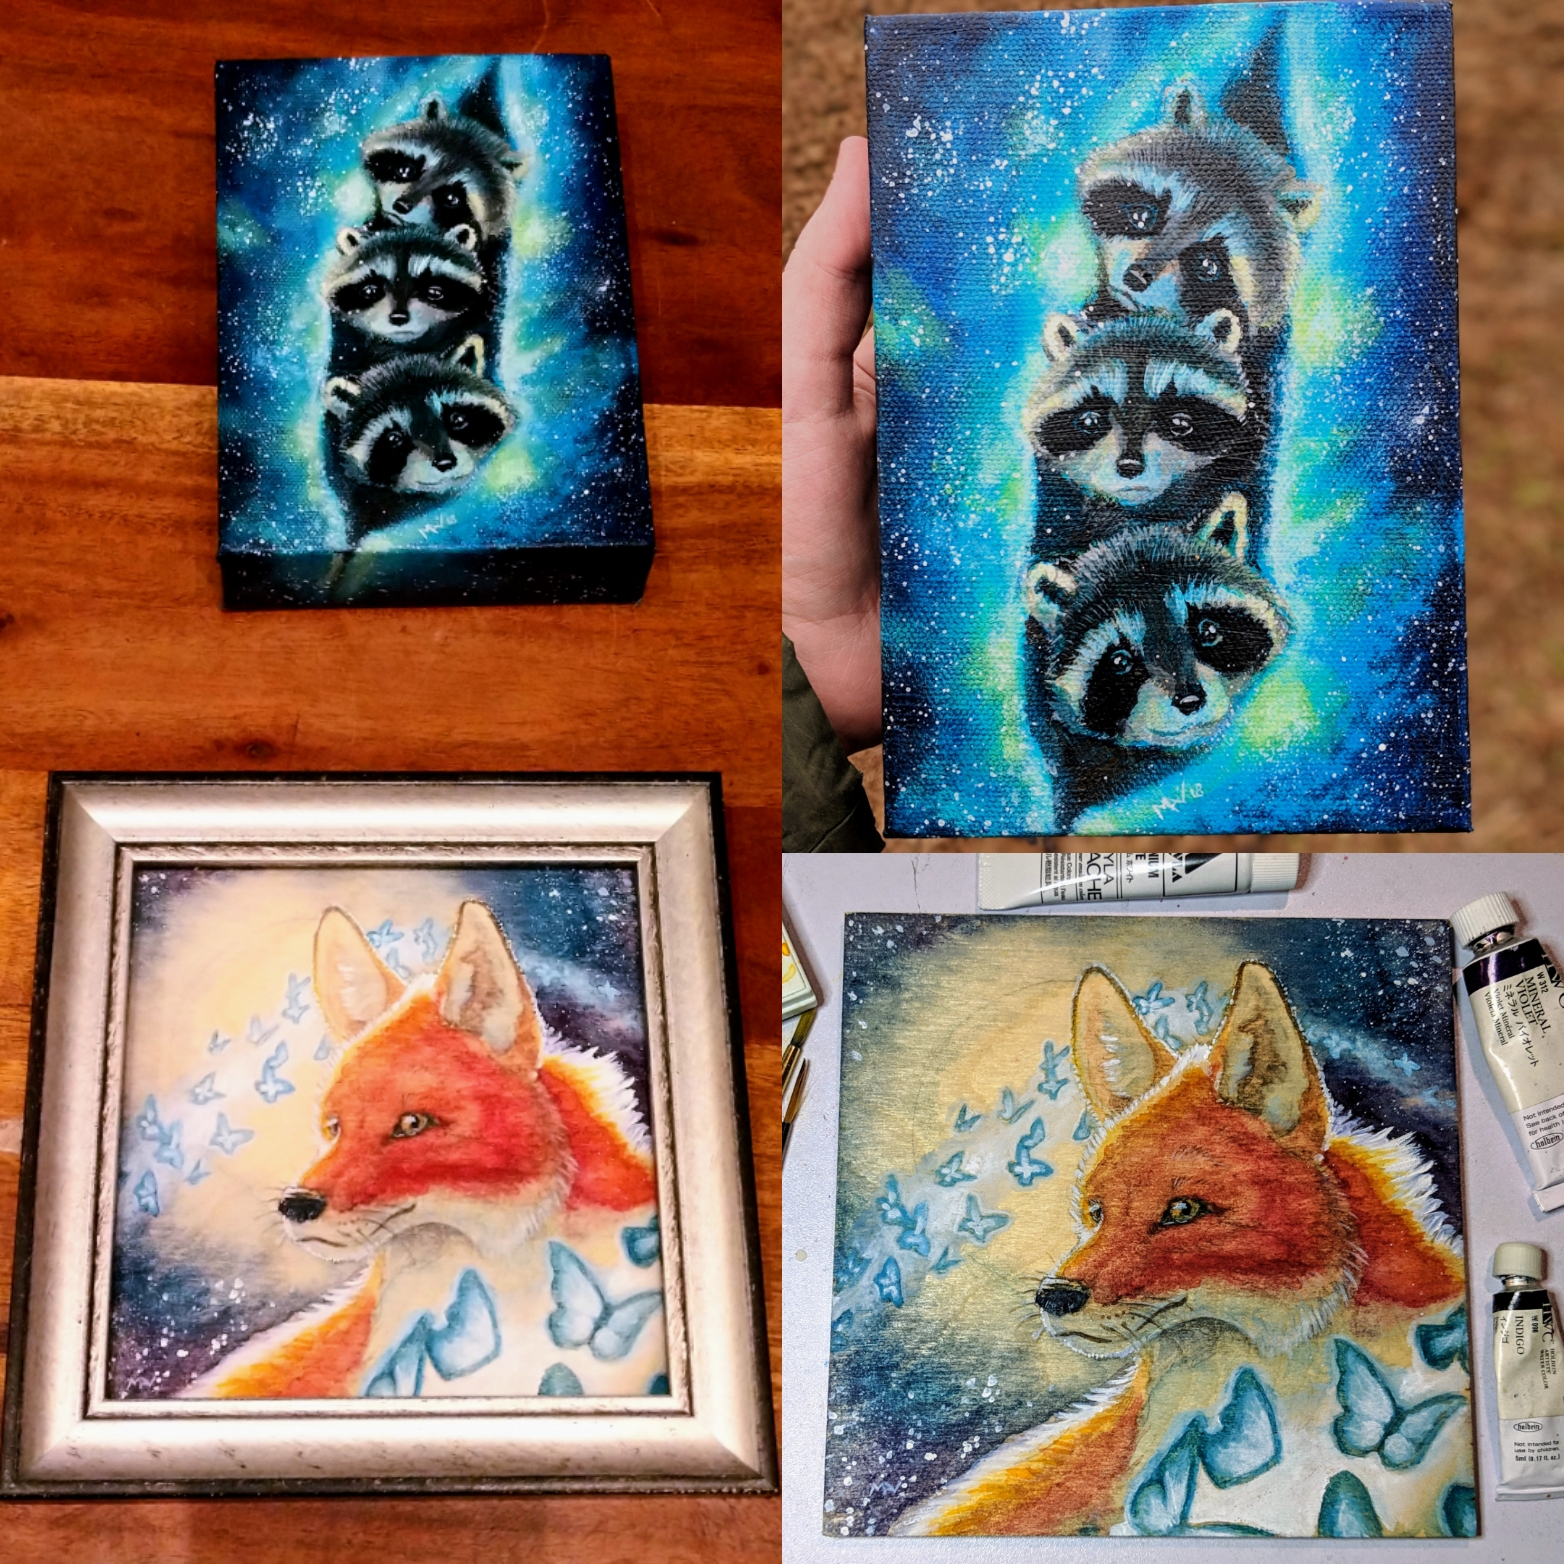 fantasy animal art paintings of a fox portrait and a nunch of raccoon babies in galaxy